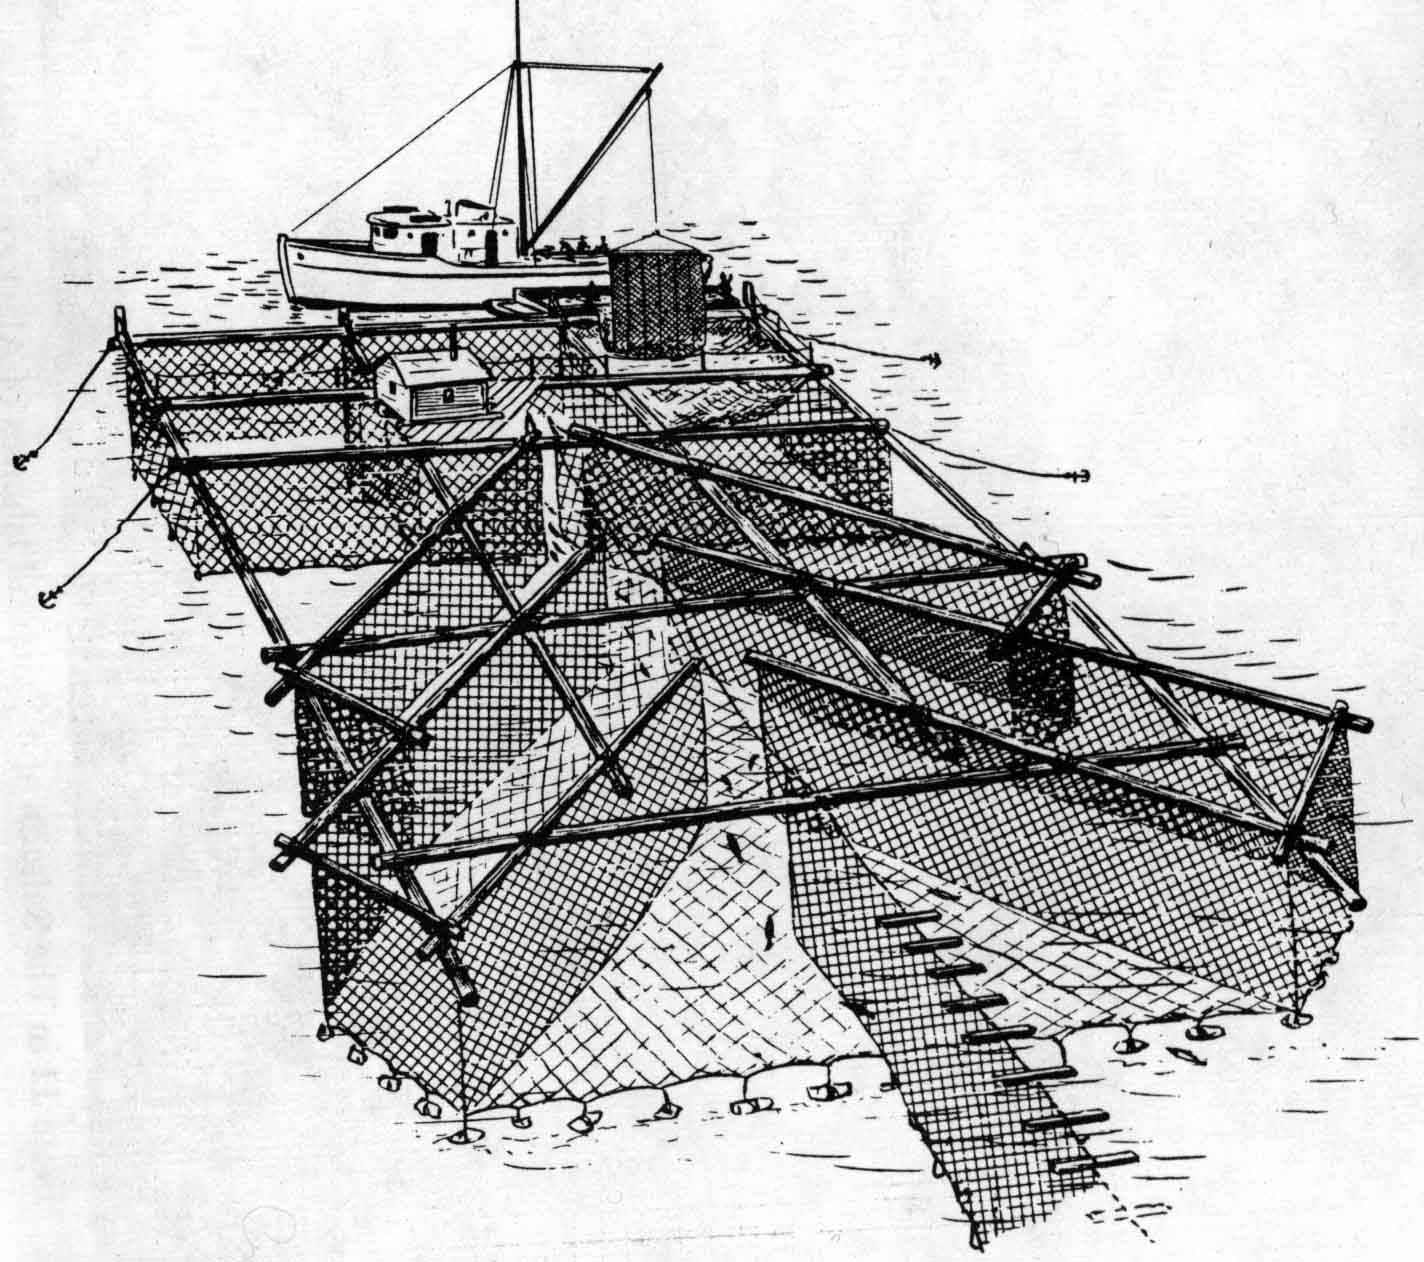 Floating salmon trap.  http://www.alaskool.org/projects/traditionalife/fishtrap/FISHTRAP.htm